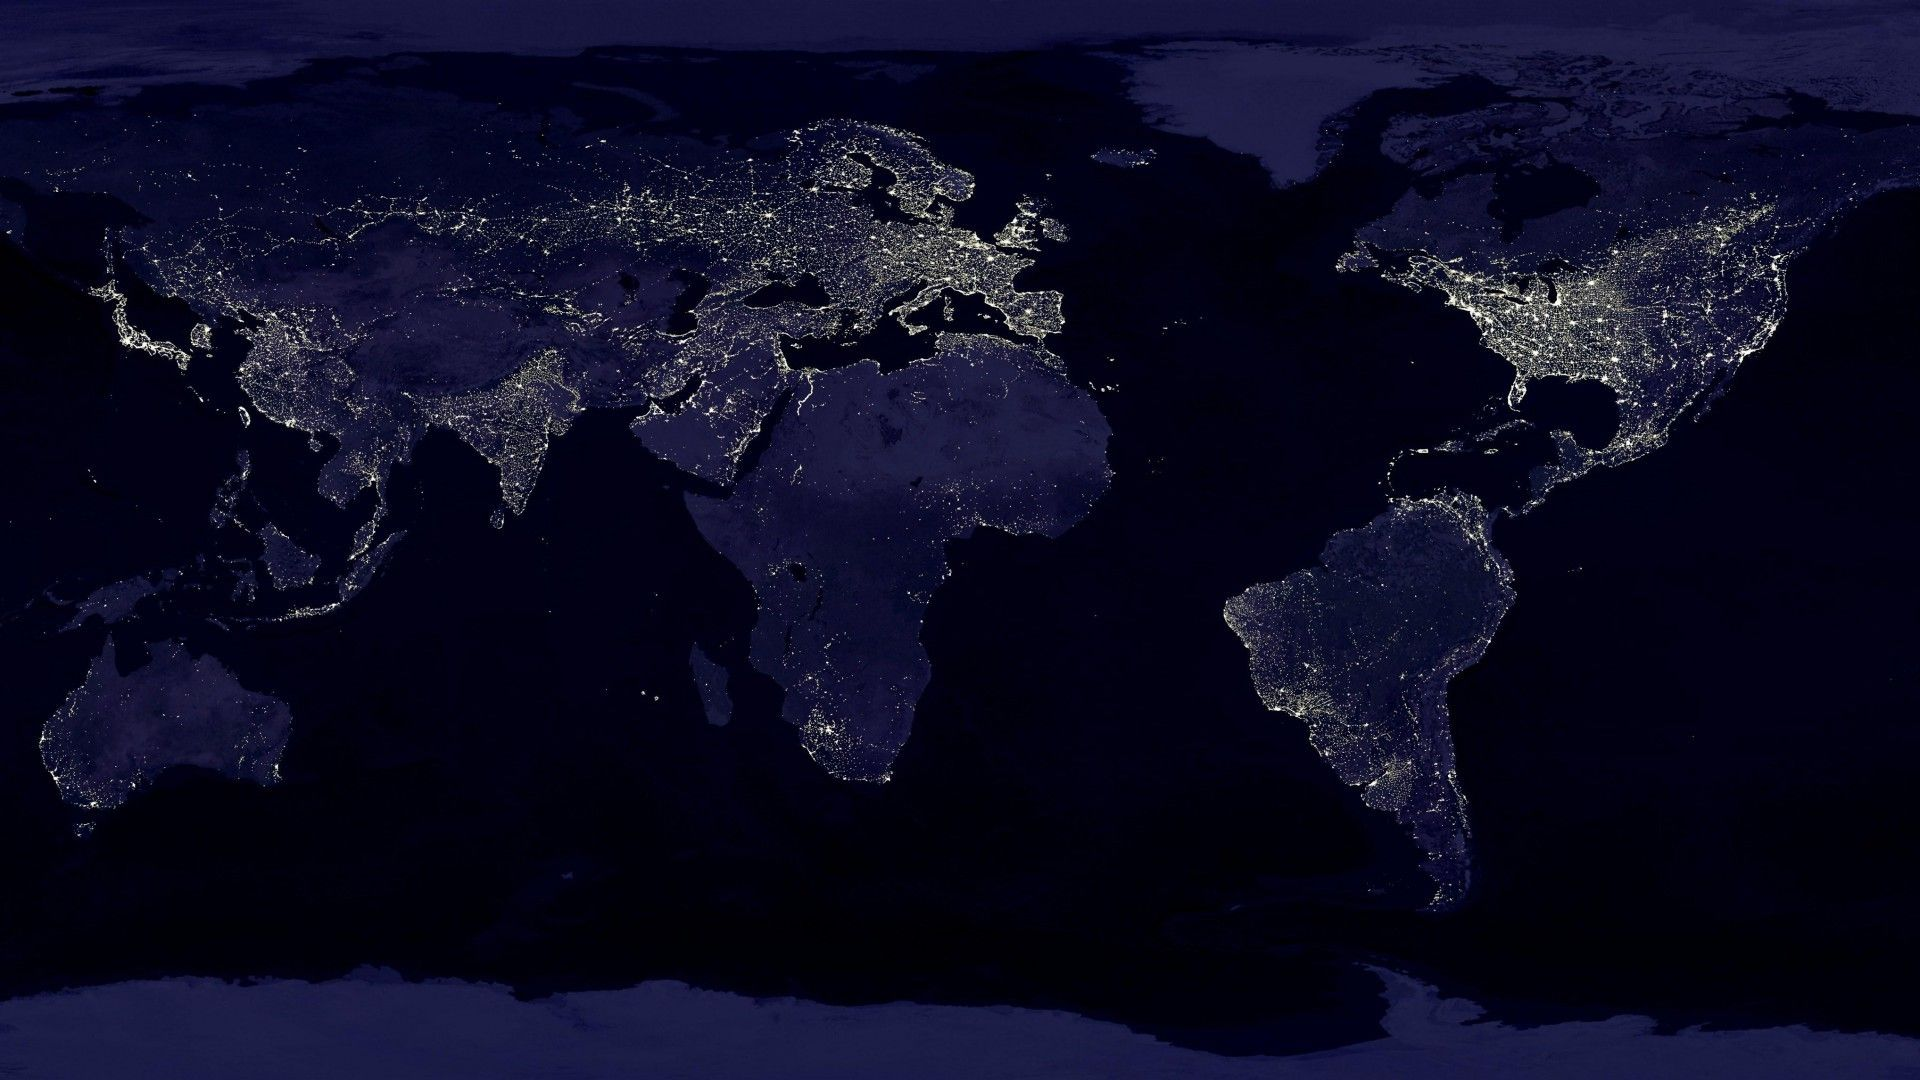 Earth at Night Wallpapers - Top Free Earth at Night